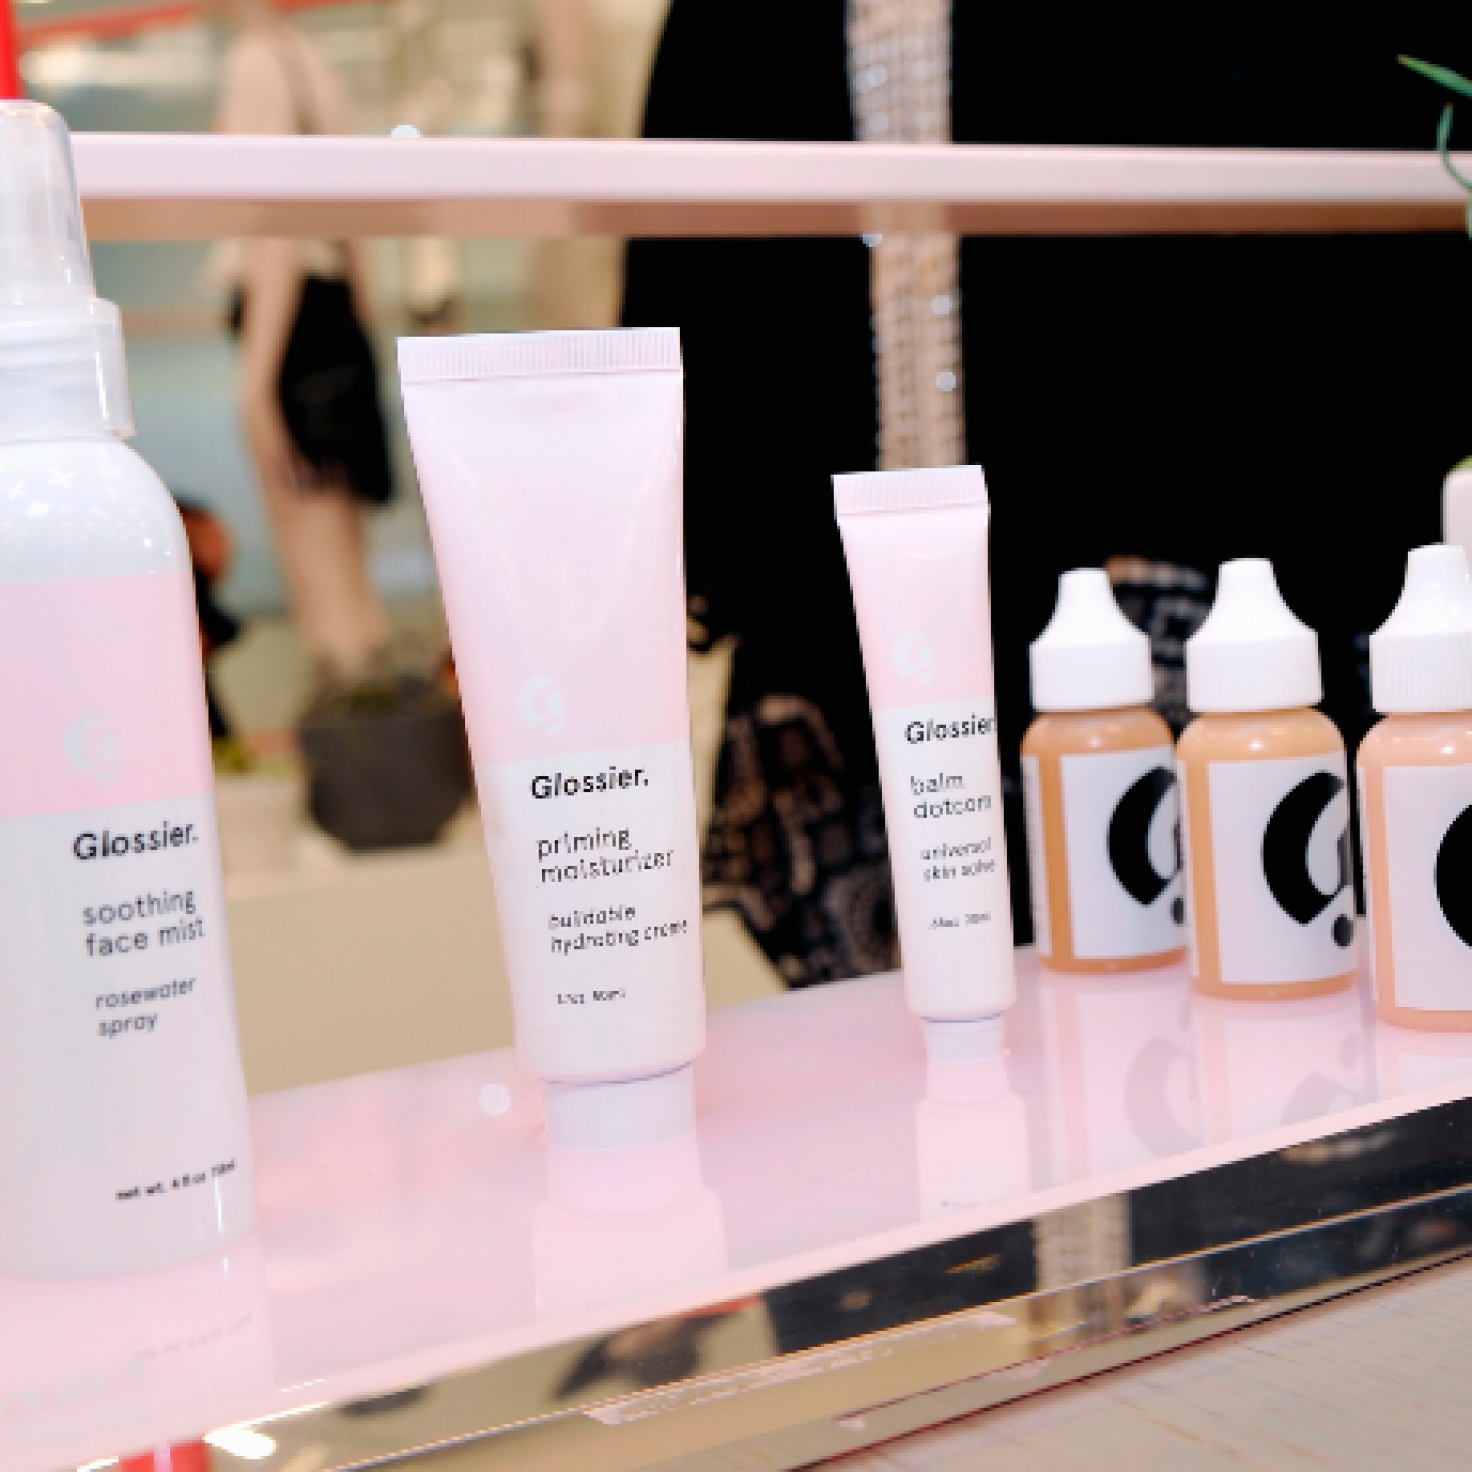 Glossier Makes A $1 Million Pledge To The Black Community